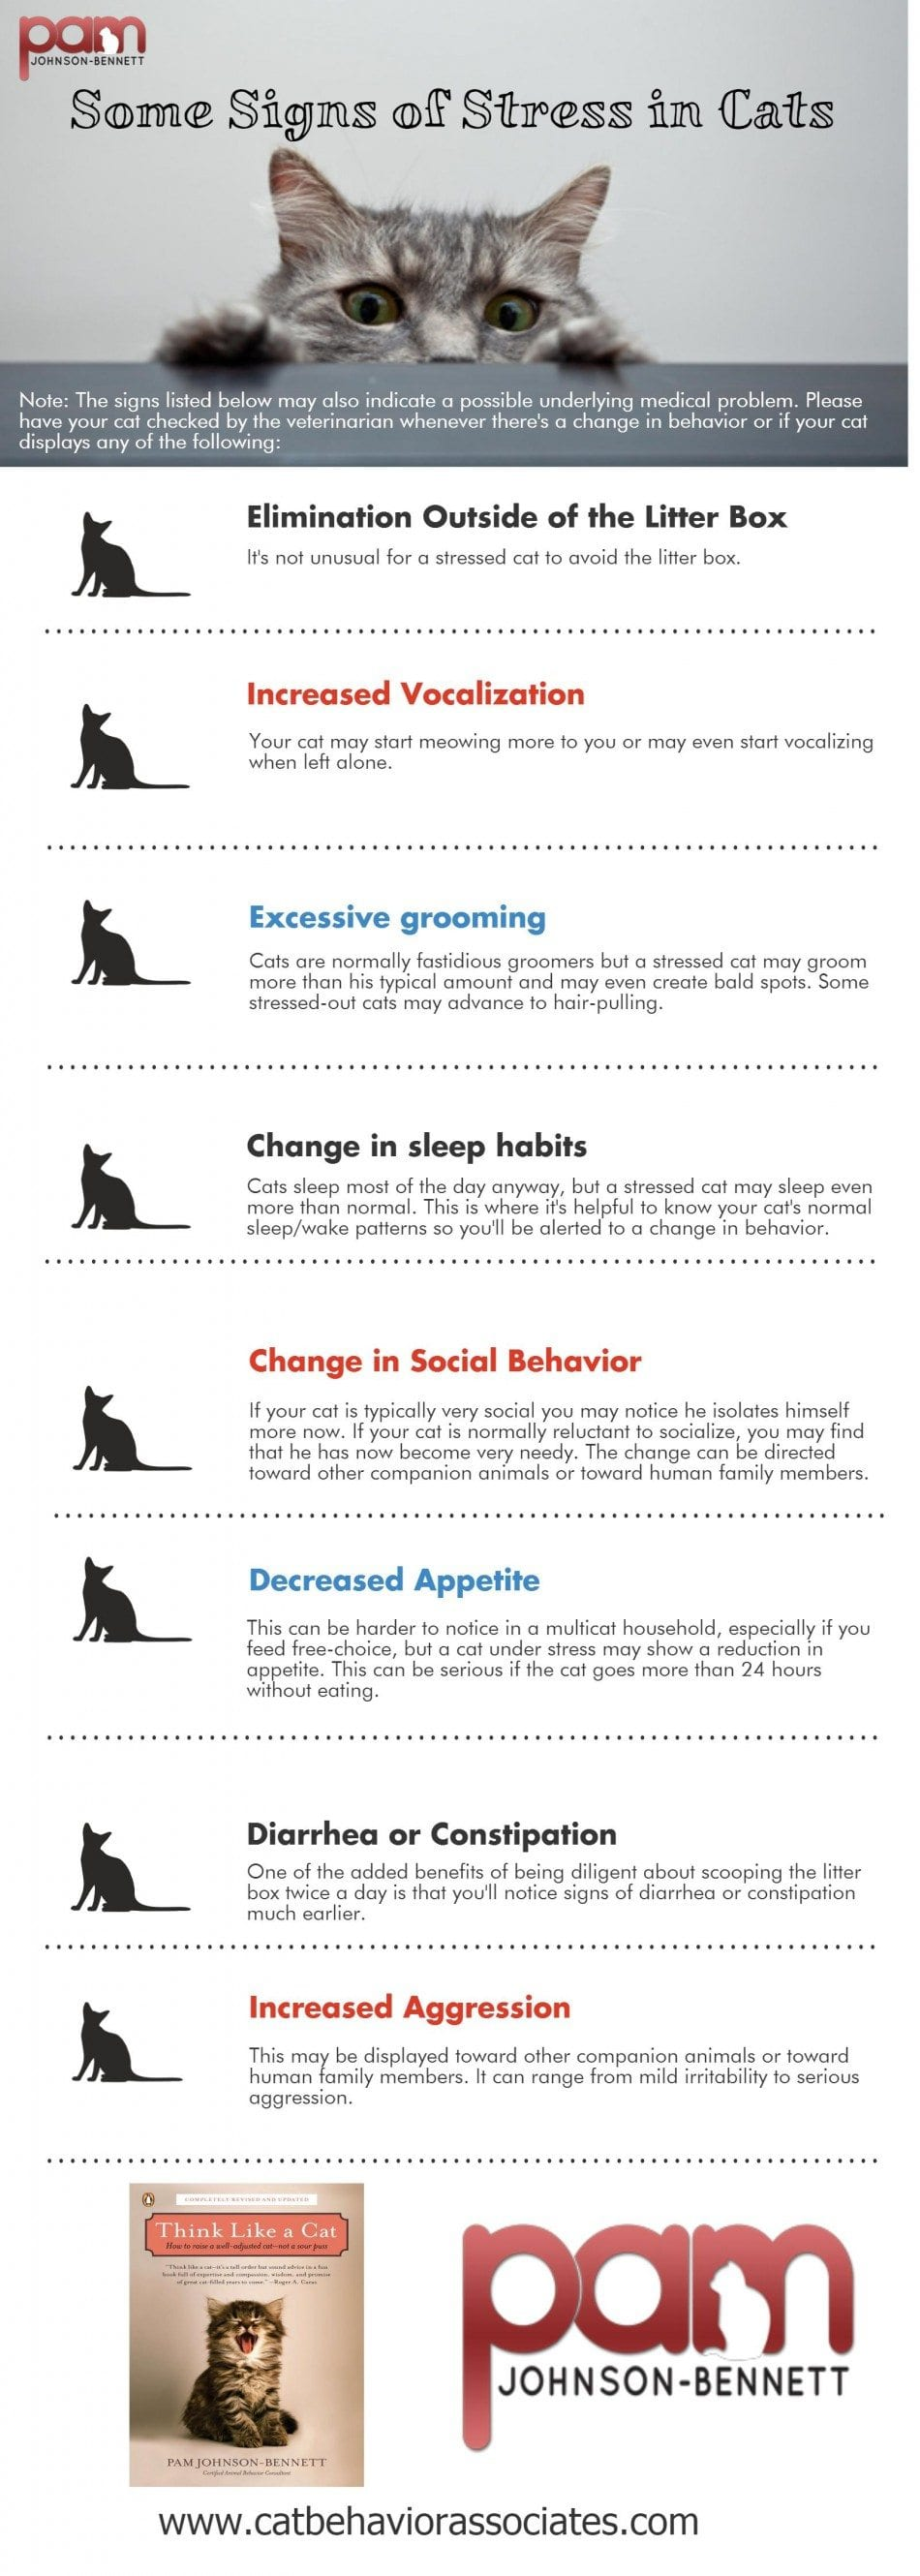 signs of stress in cats infographic